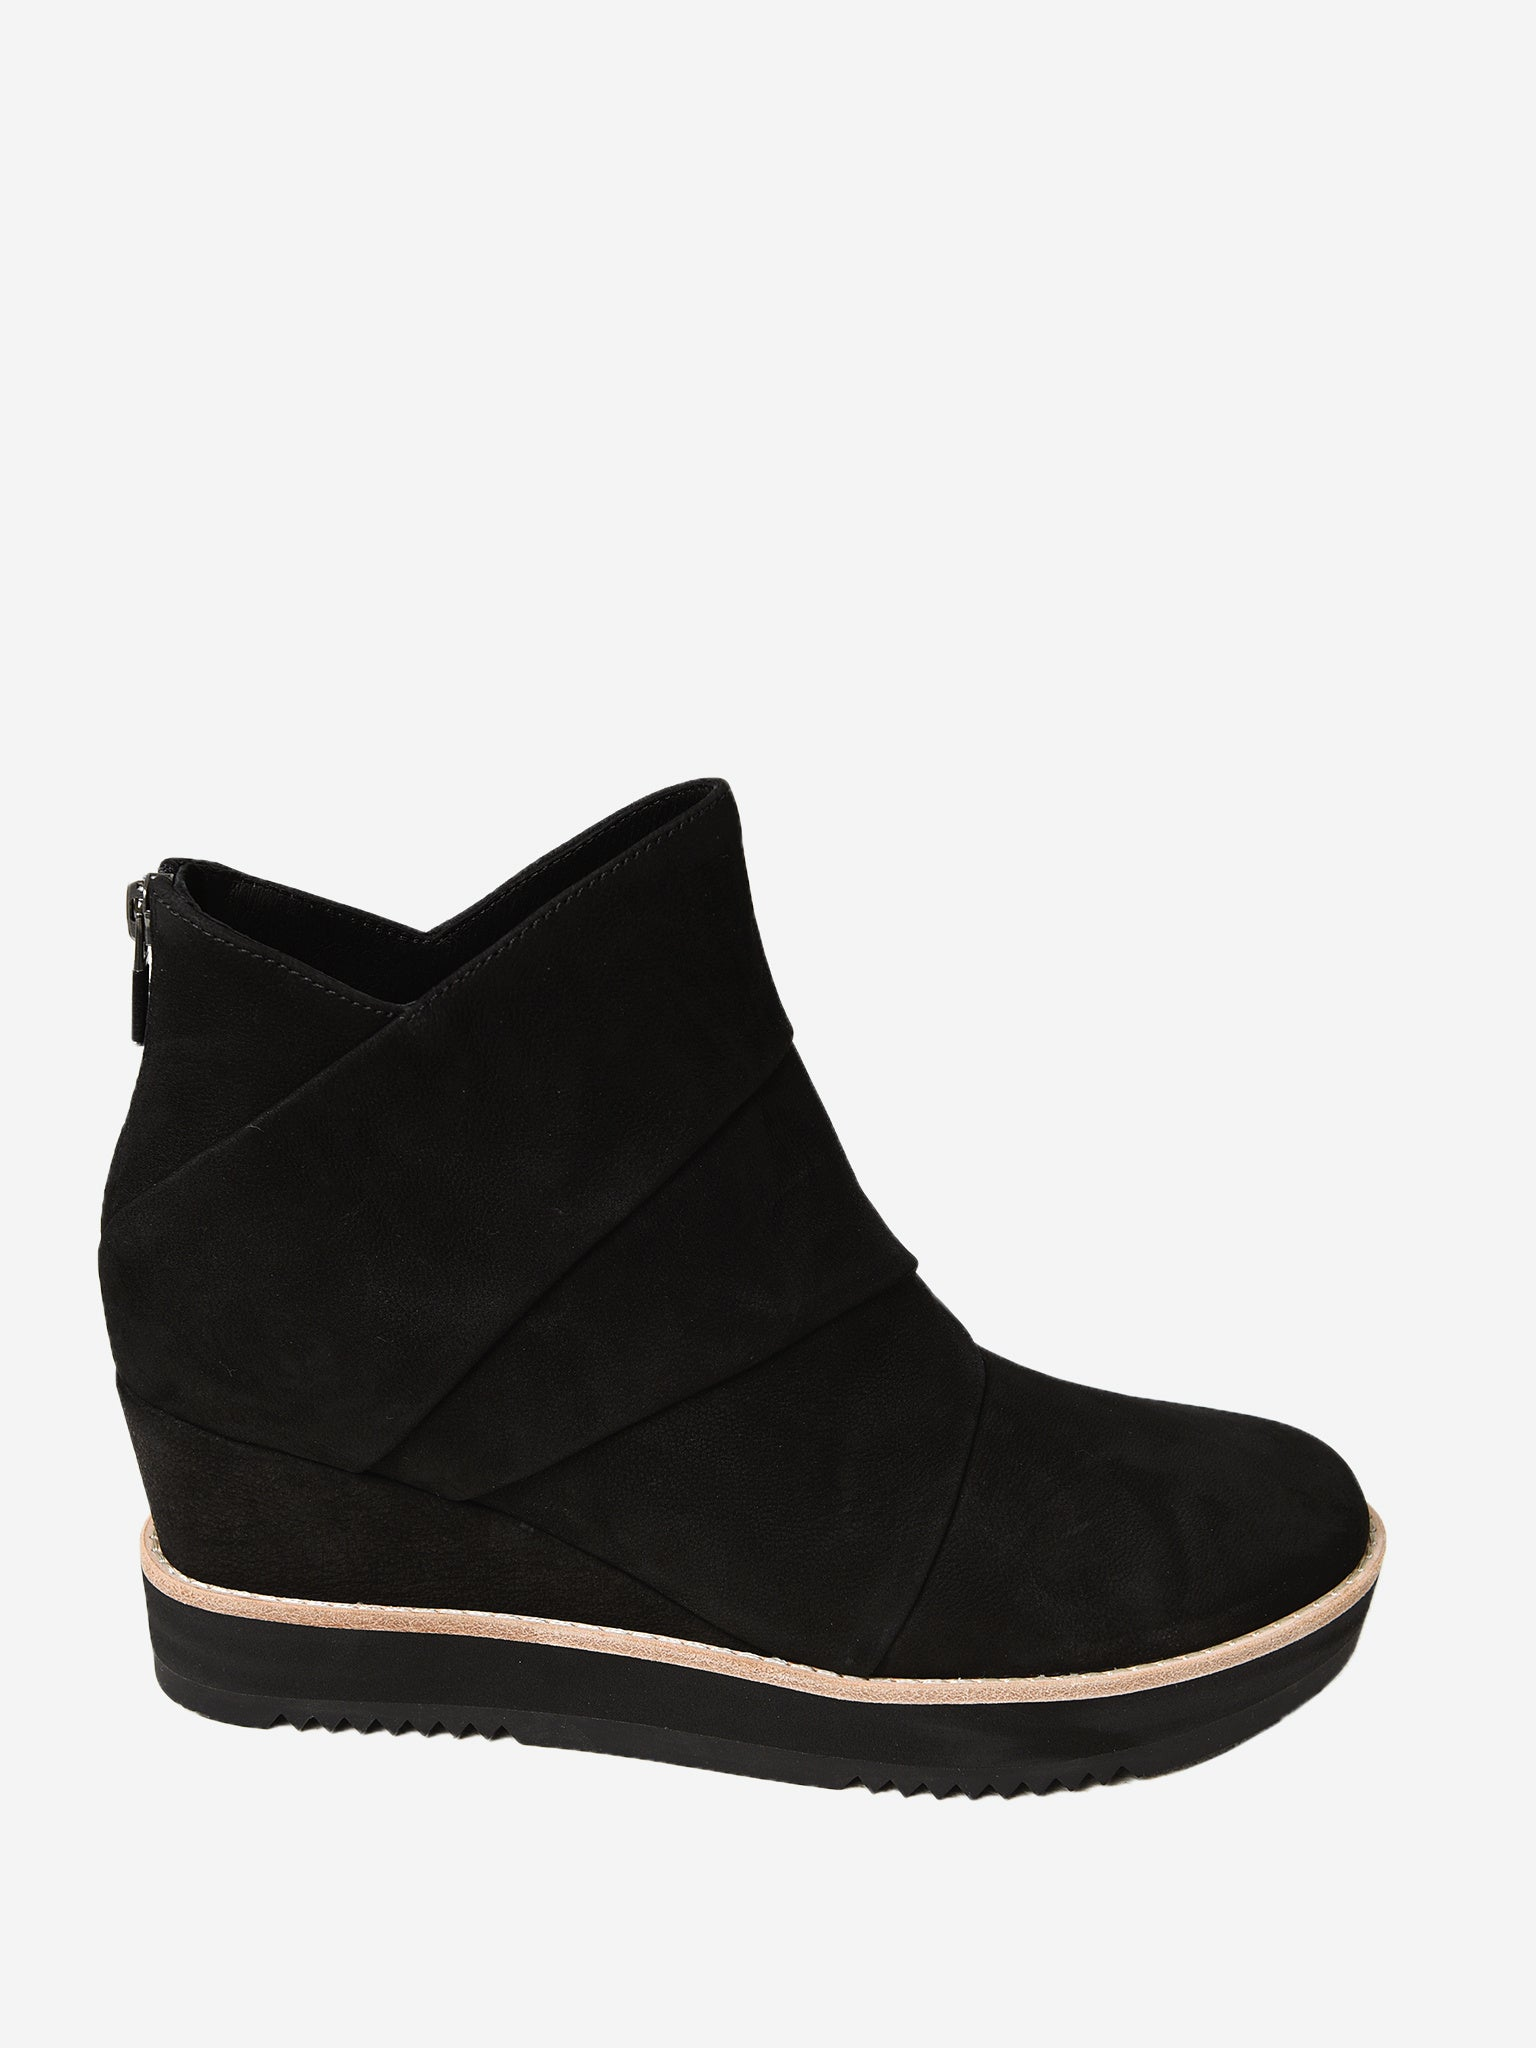 Eileen Fisher Shoes Clapton Bootie